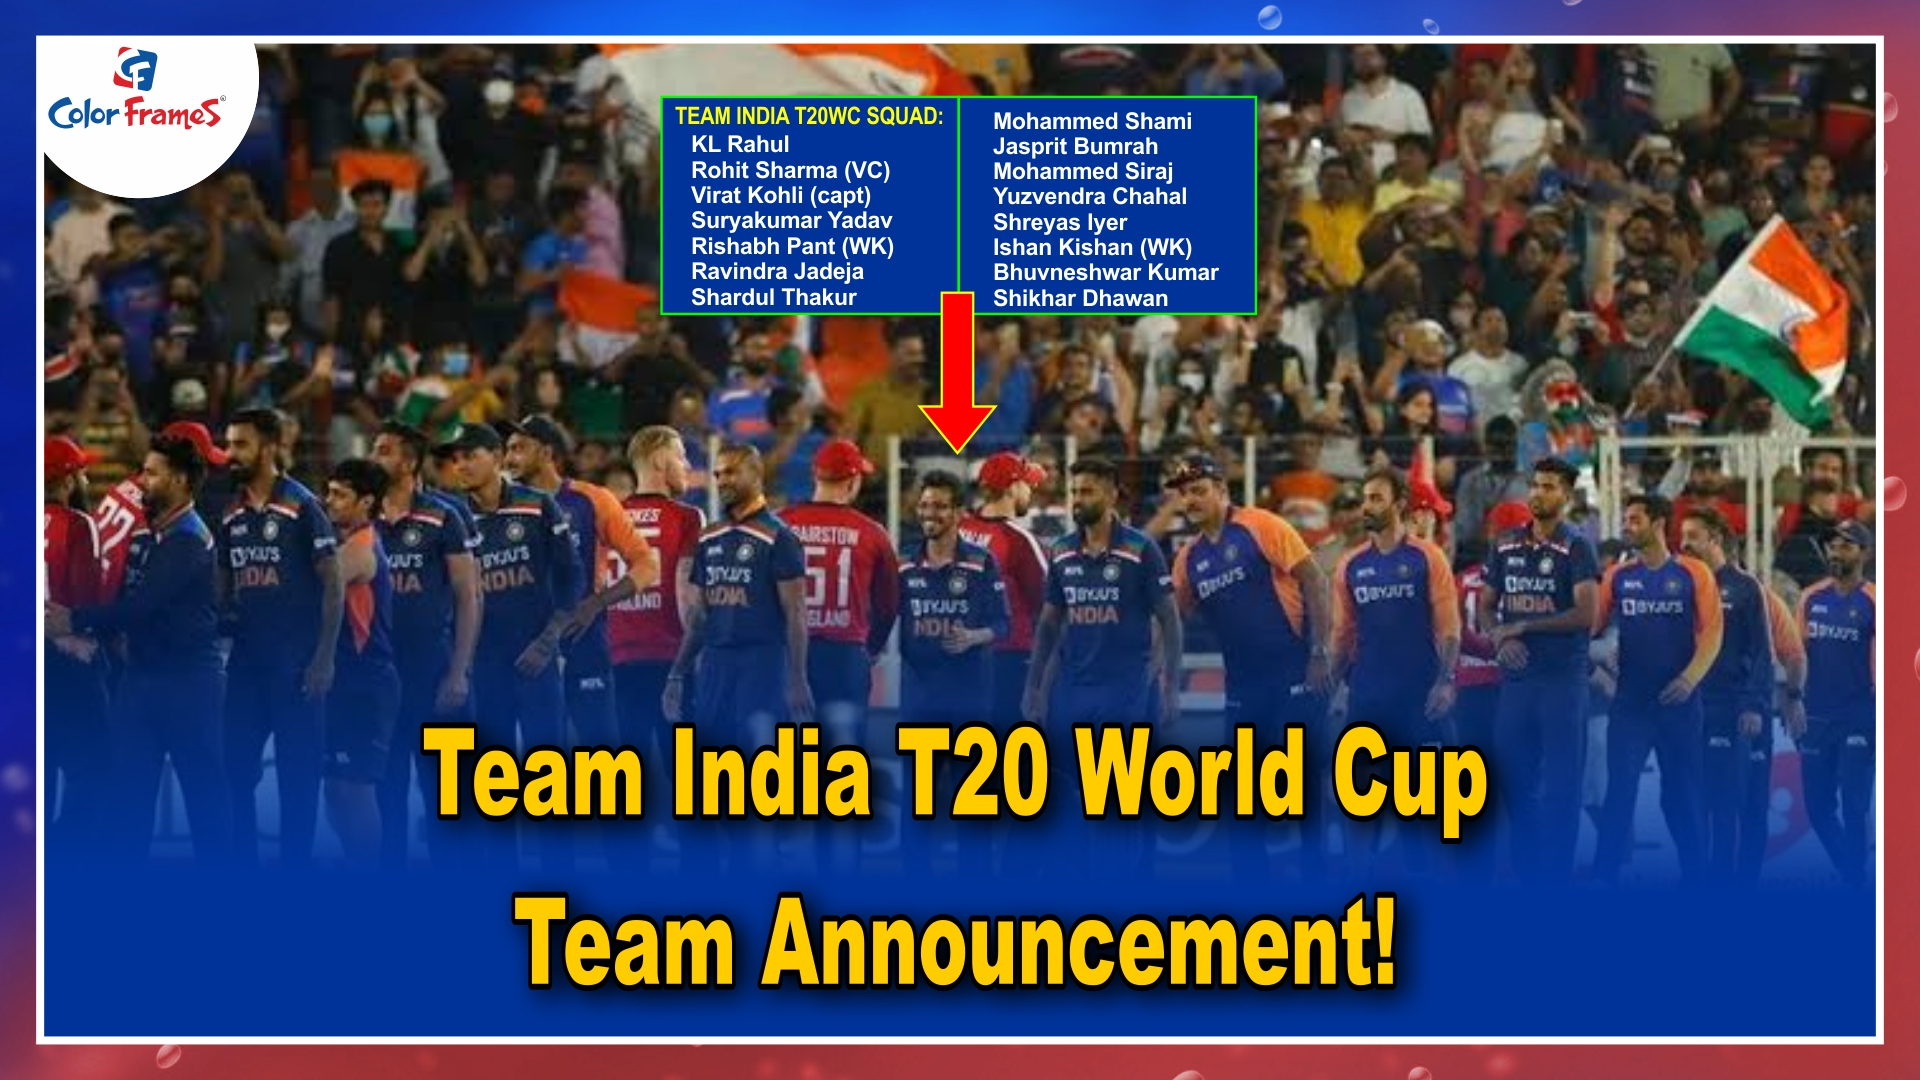 Big Breaking: Team India T20 World Cup Team Announcement!